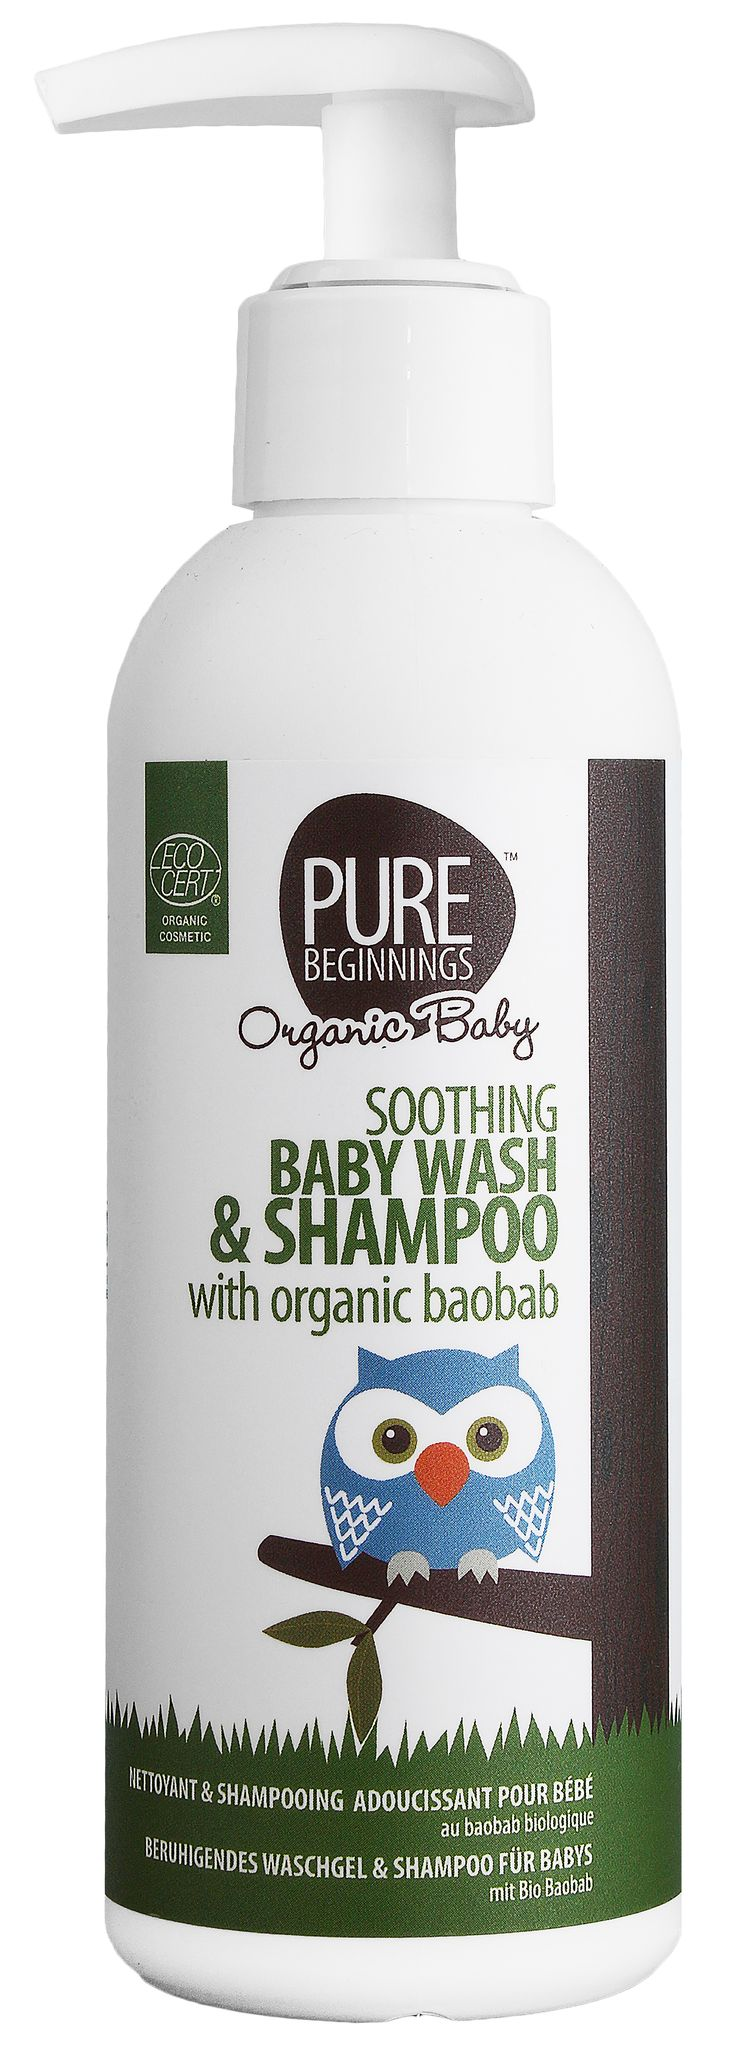 SOOTHING BABY WASH & SHAMPOO   *Mild all in one  *Ultra mild surfacants *Organic baobab fruit extract *Organic lavender oil *Organic rose geranium oil